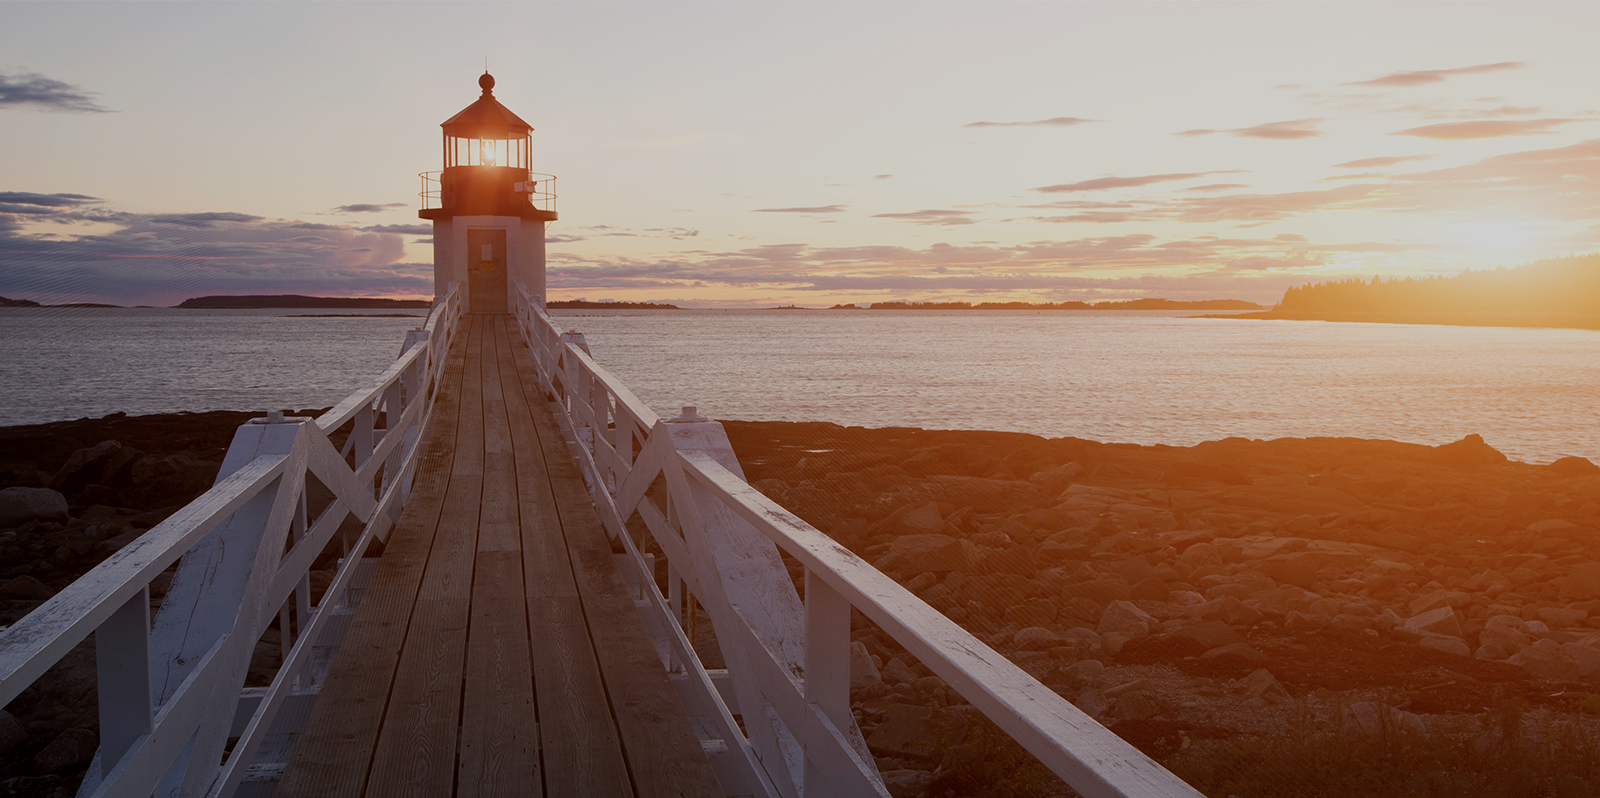 Homes for Sale Camden Maine | Homes for Sale in Rockland Maine